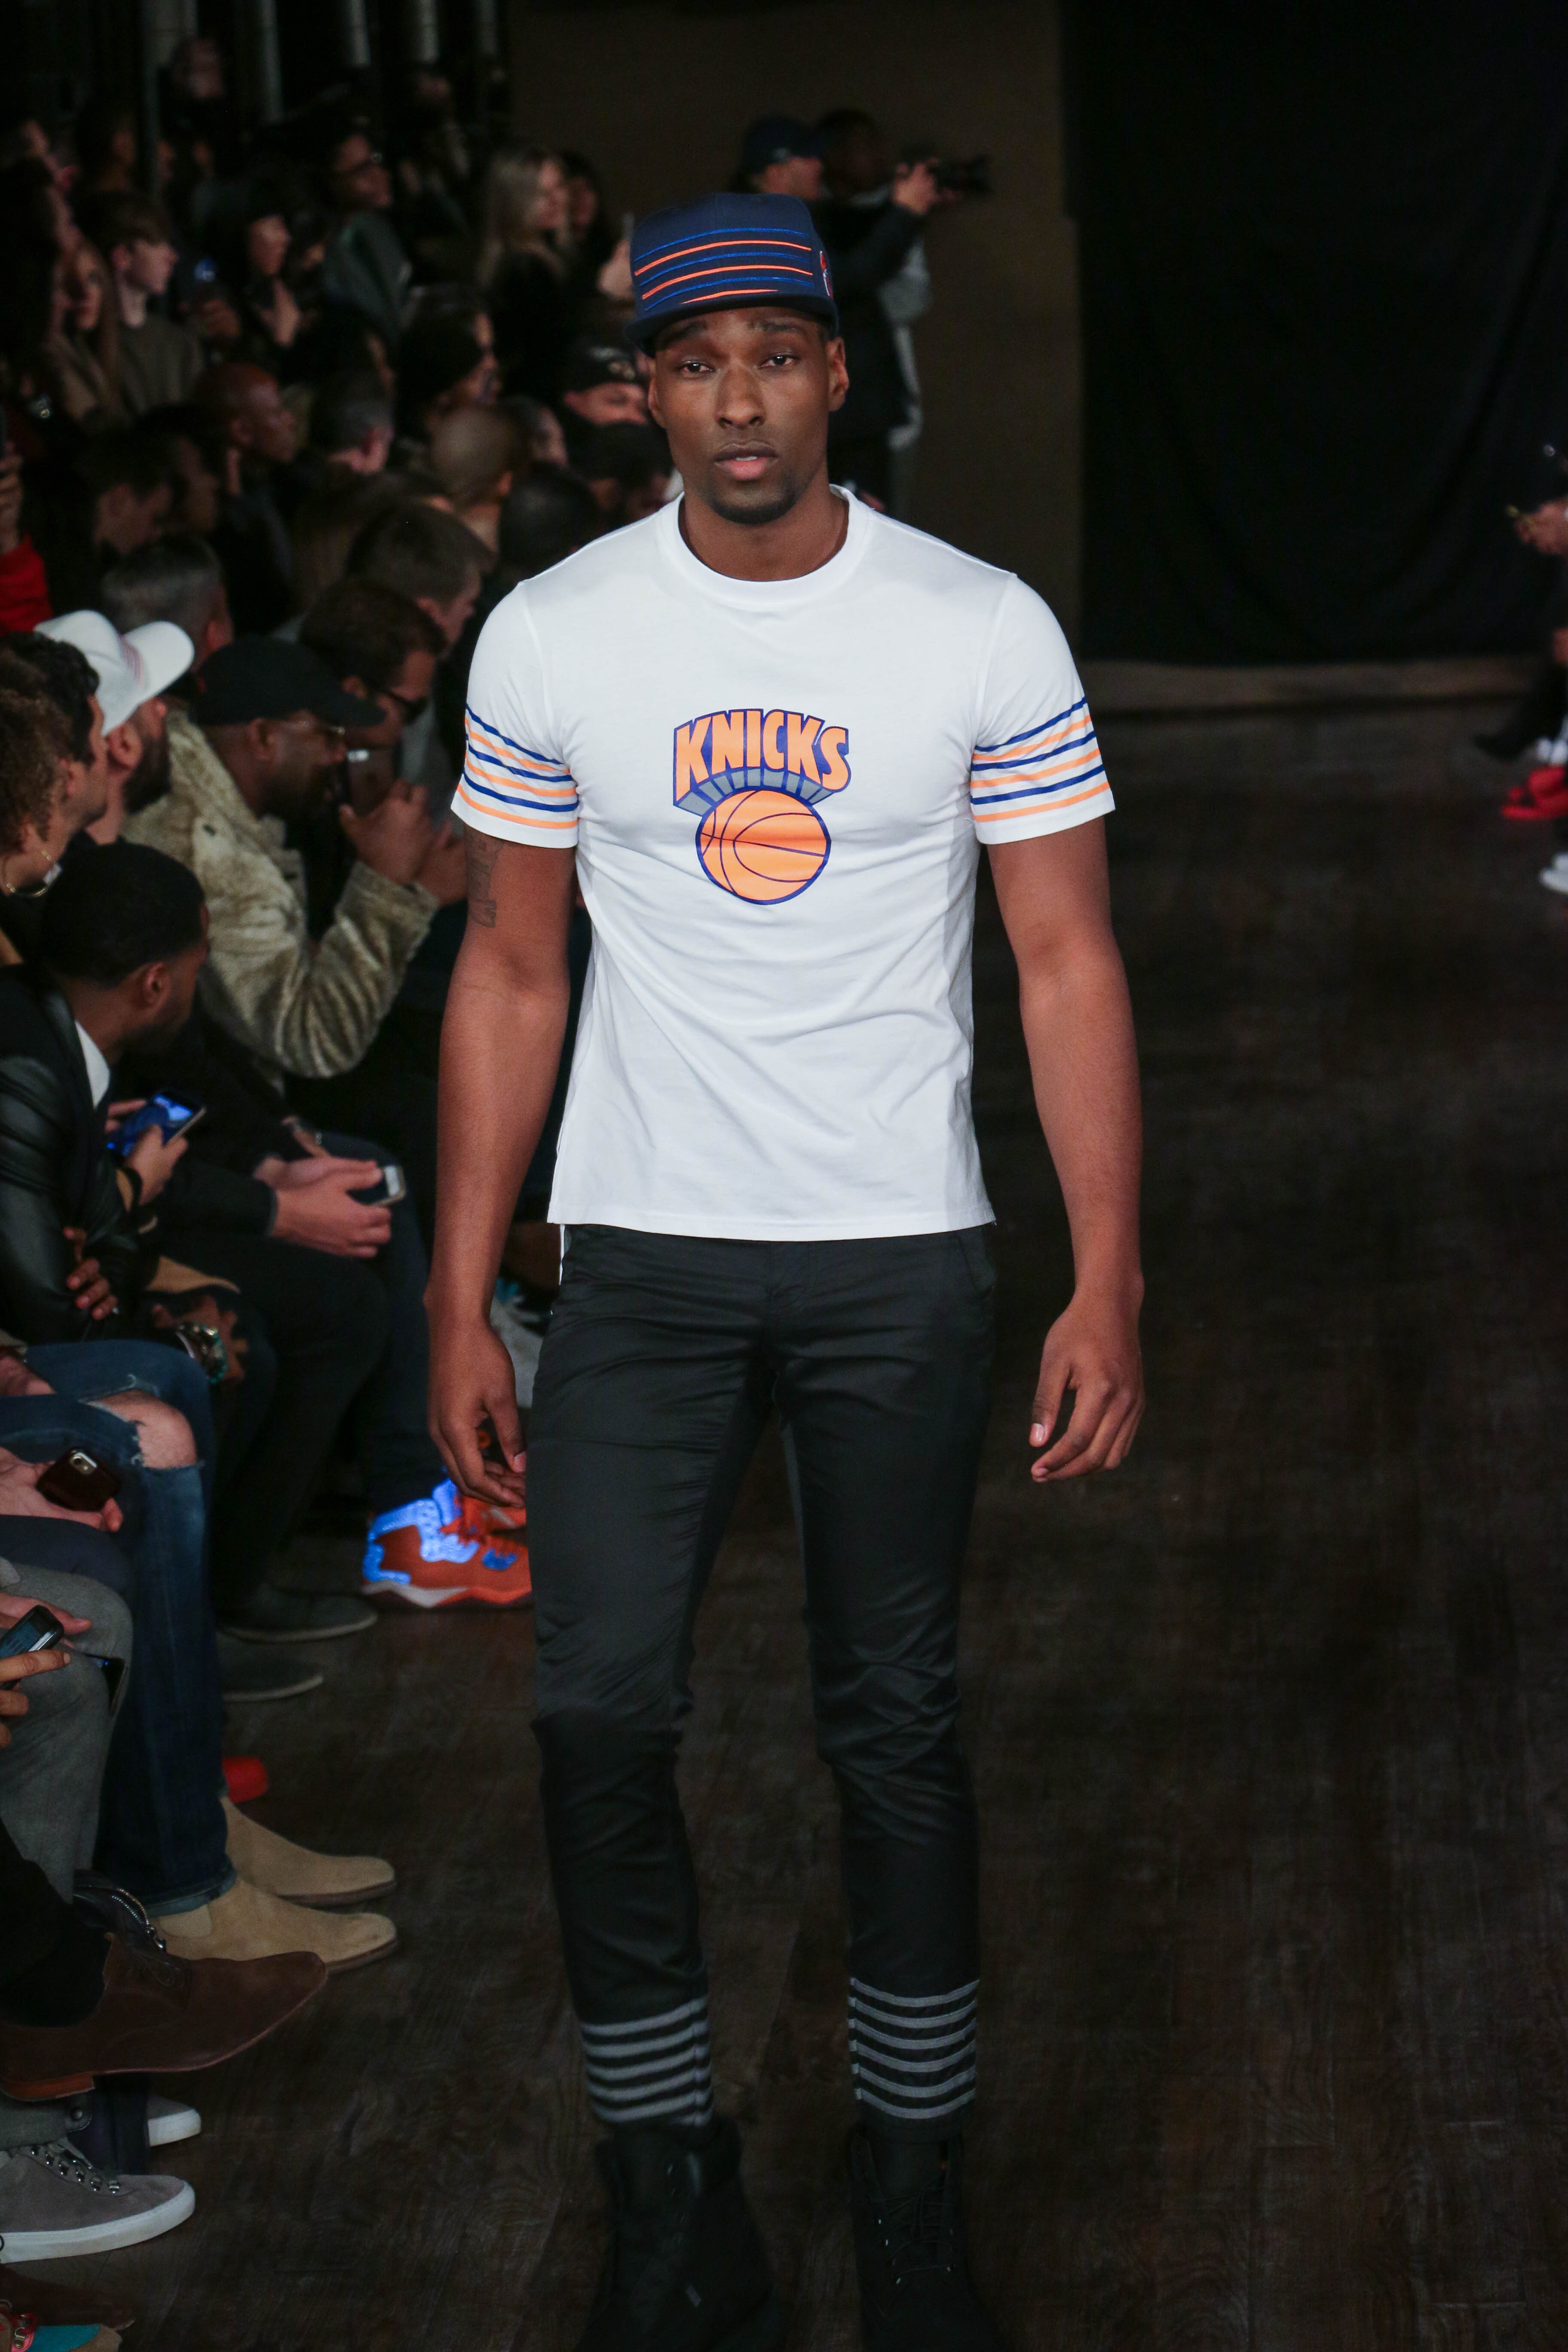 Grungy Gentleman Puts A Spin On New York Knicks And Rangers Gear For New MSG Collaboration.